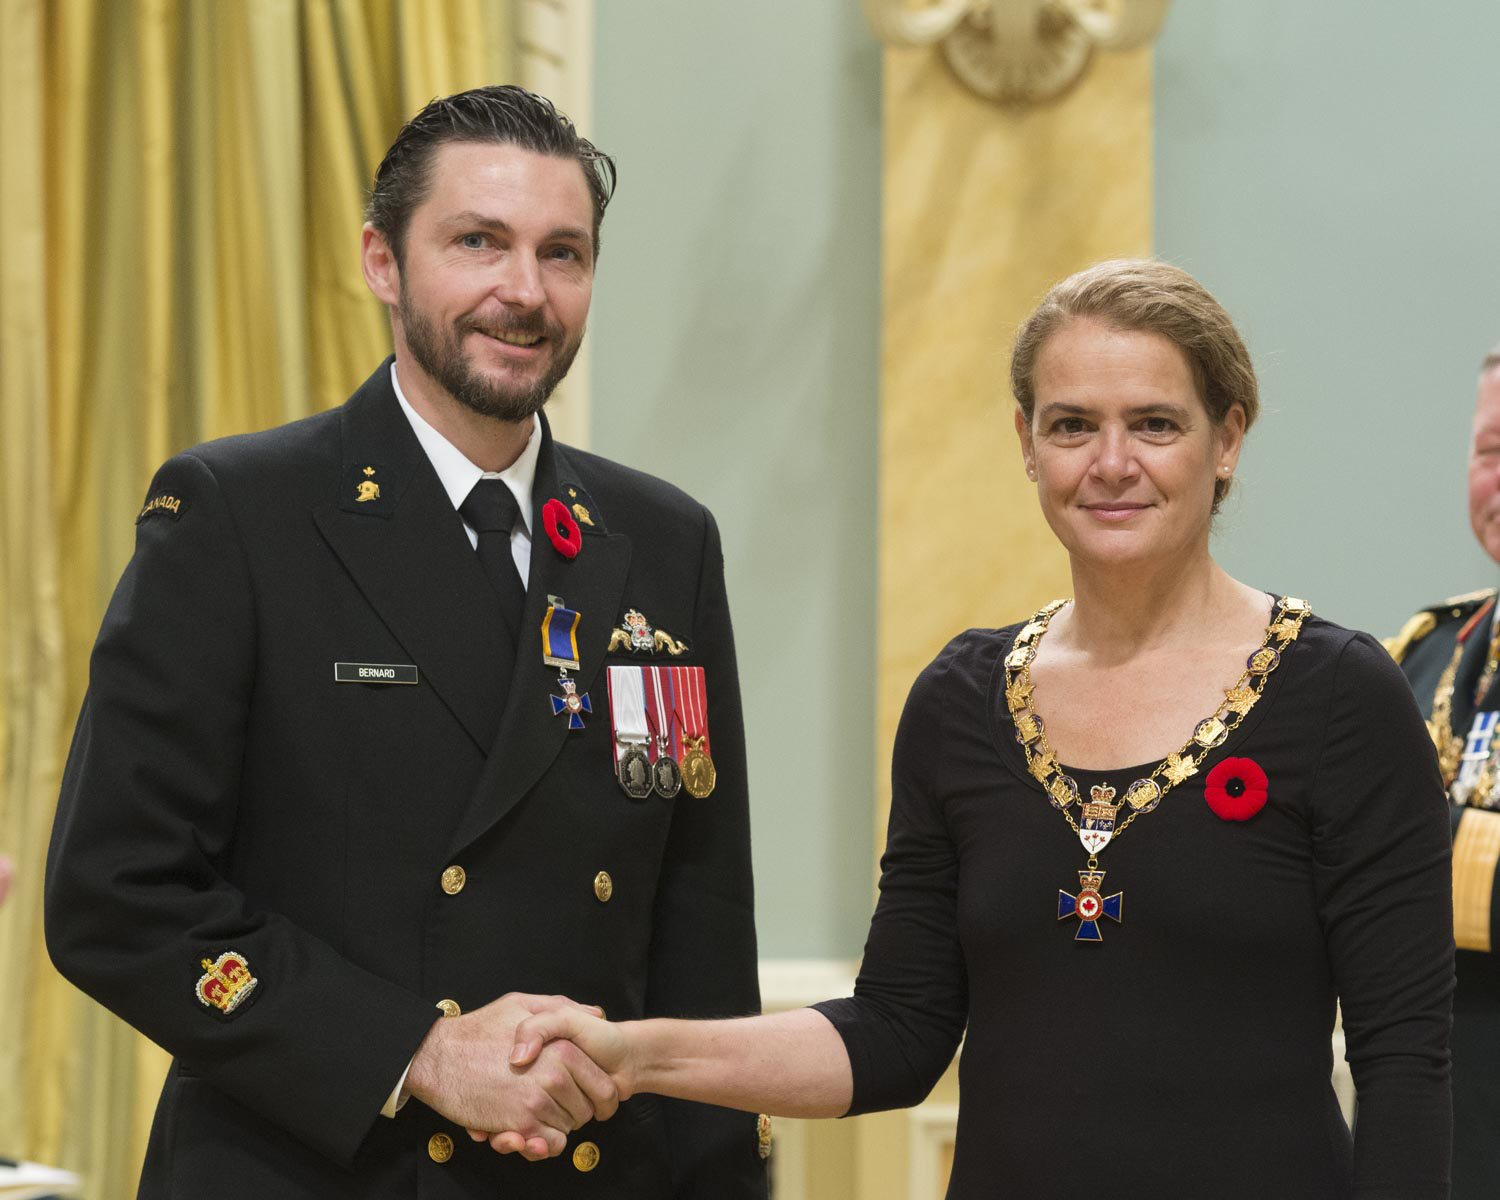 Her Excellency presented the Order of Military Merit at the Member level (M.M.M.) to Petty Officer 1st Class Yves Leonide Bernard, M.M.M., C.D., from the Fleet Diving Unit (Atlantic), in Halifax, Nova Scotia.